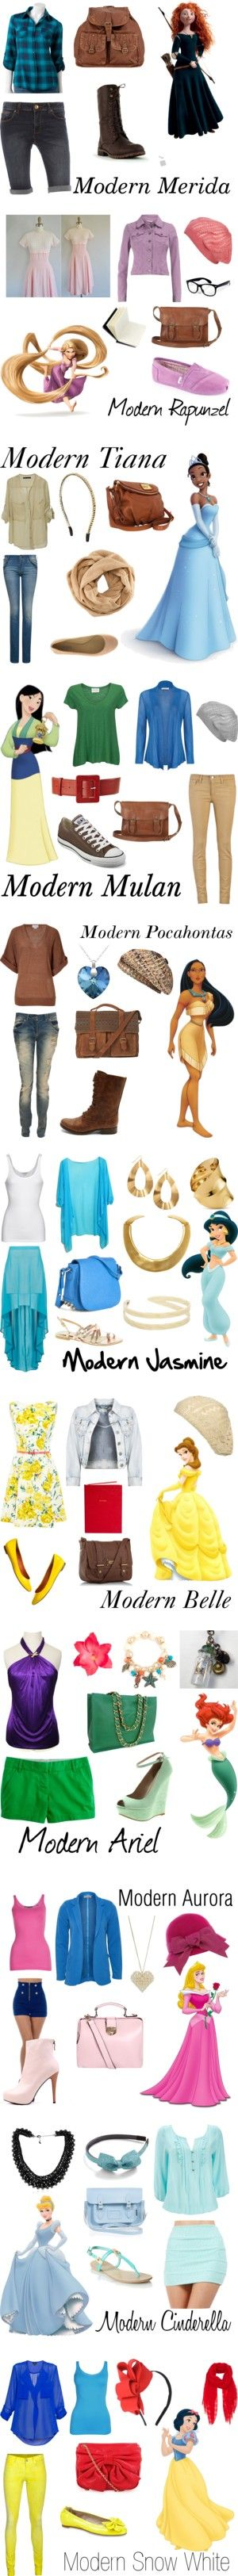 """Modern Disney Princesses"" by sharkbitegal on Polyvore. Mine would be Merida, Mulan, Rapunzel, and Pocahontas :)"